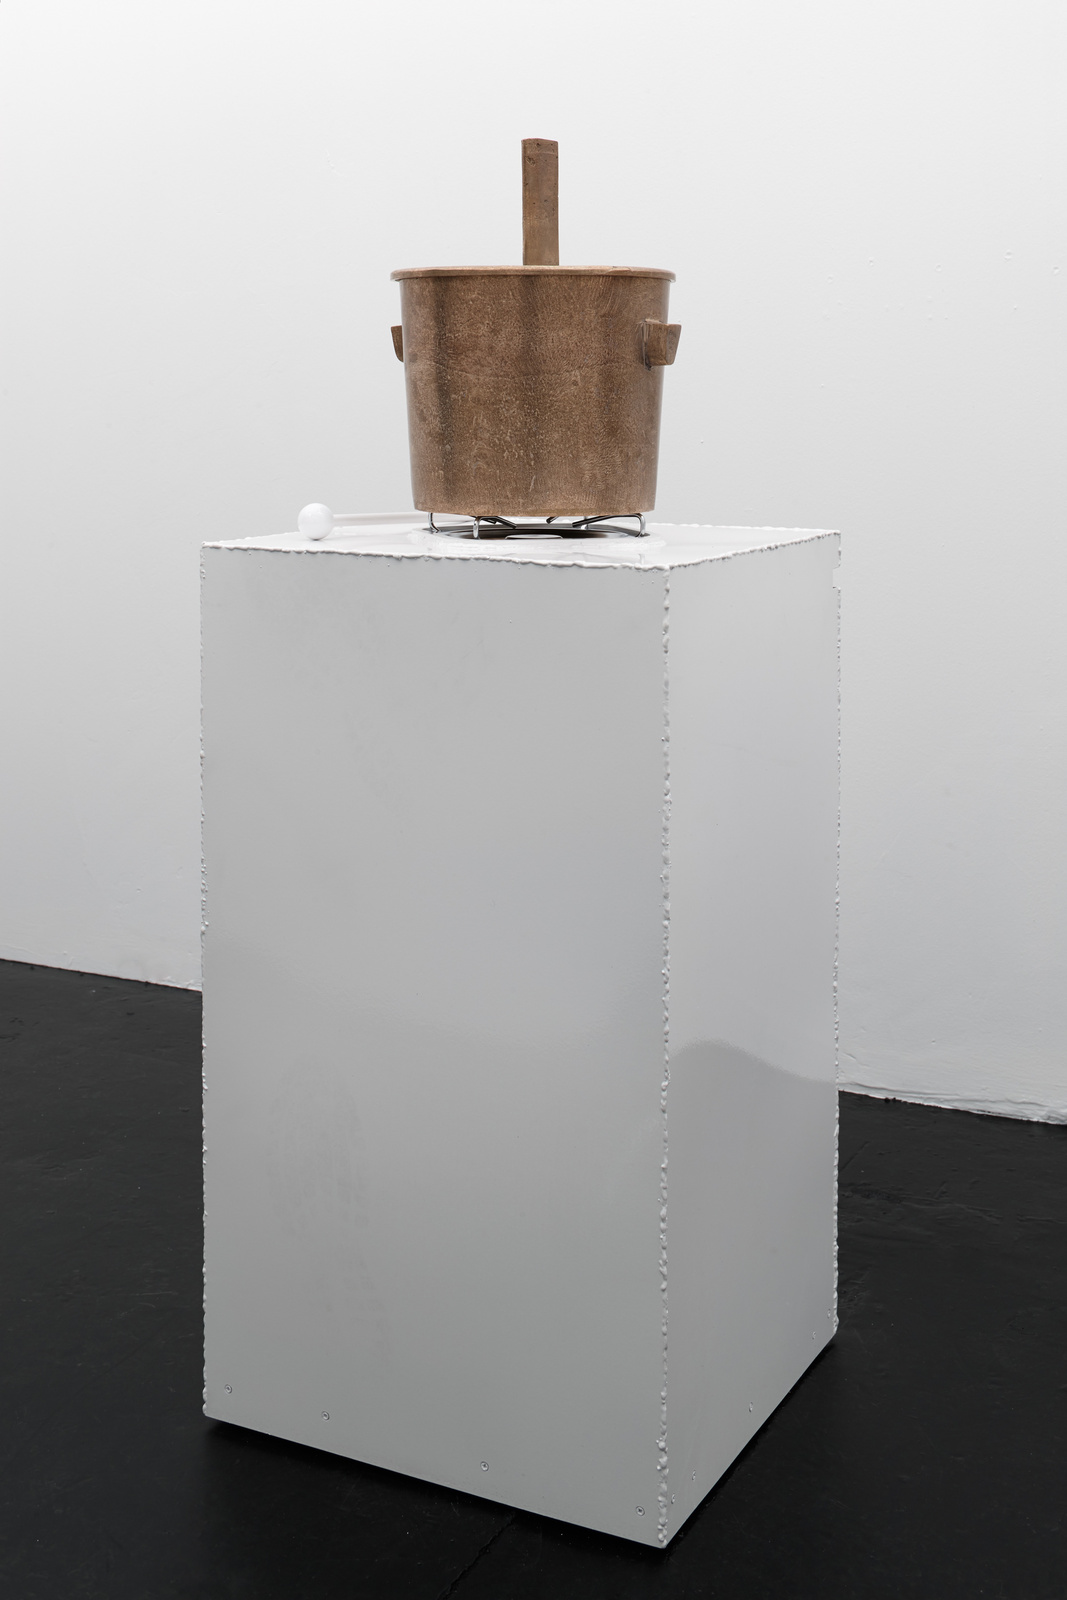 Franz West - Caldare ( A mobile stove sculpture object), 1991